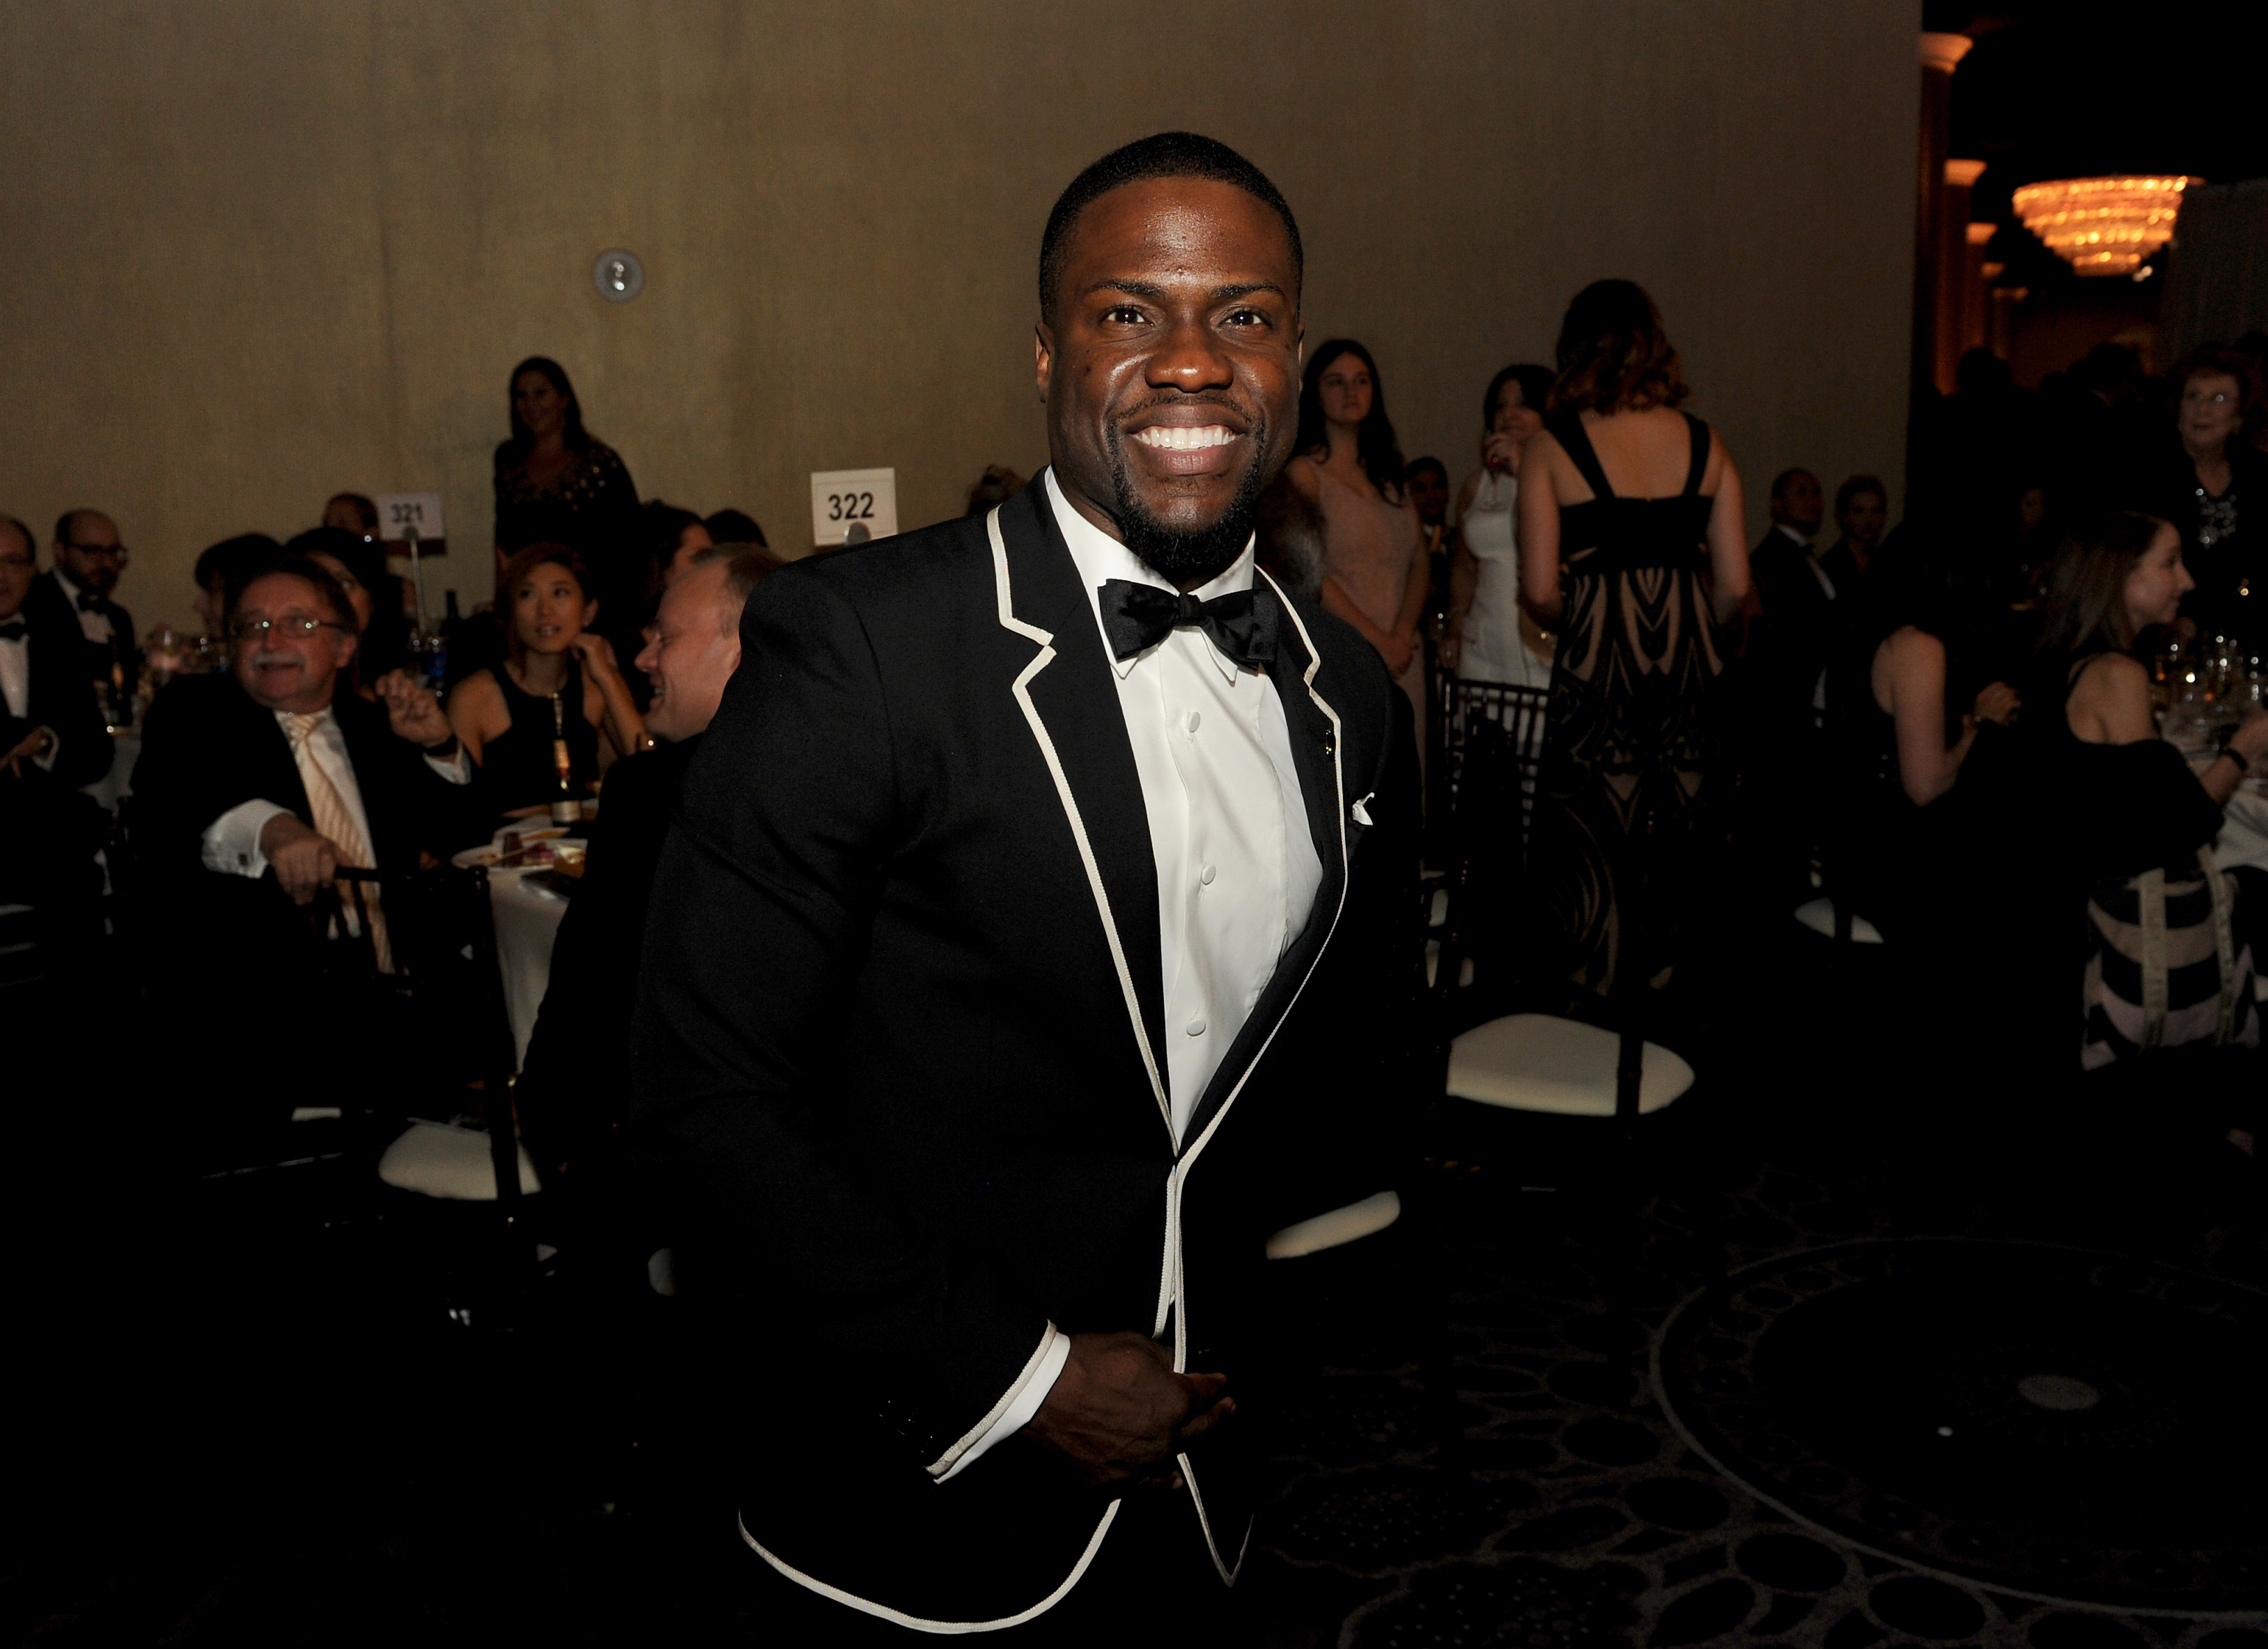 BEVERLY HILLS, CA - JANUARY 11:  Actor Kevin Hart attends the 72nd Annual Golden Globe Awards cocktail party at The Beverly Hilton Hotel on January 11, 2015 in Beverly Hills, California.  (Photo by Kevin Winter/Getty Images)